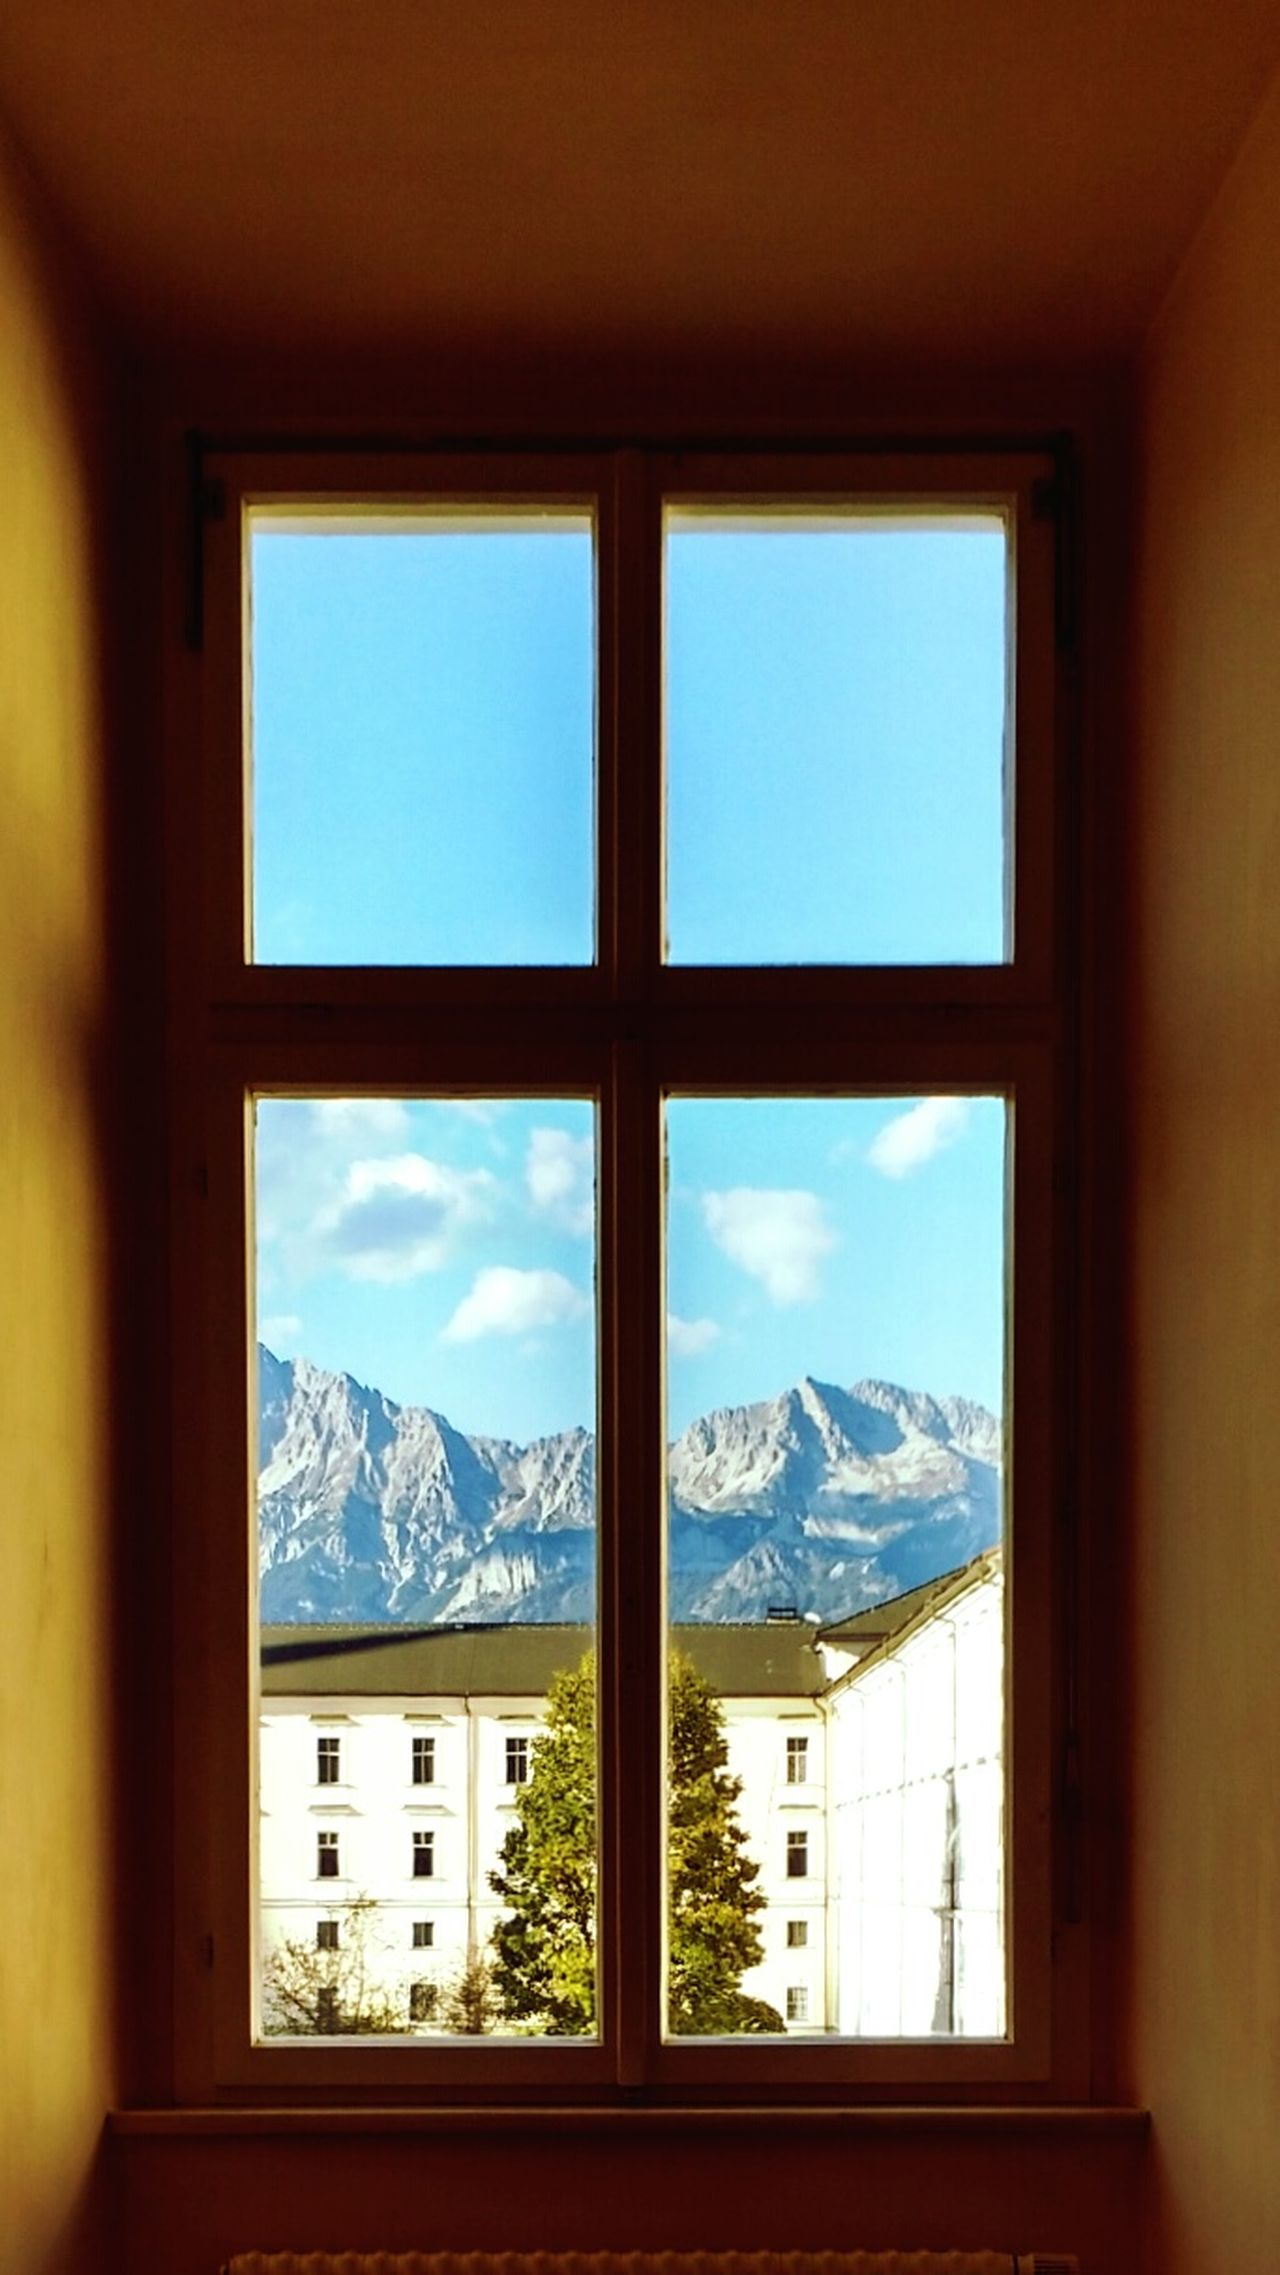 Window Architecture Indoors  Built Structure House Residential Building No People Day Cloister Stift Admont Museum